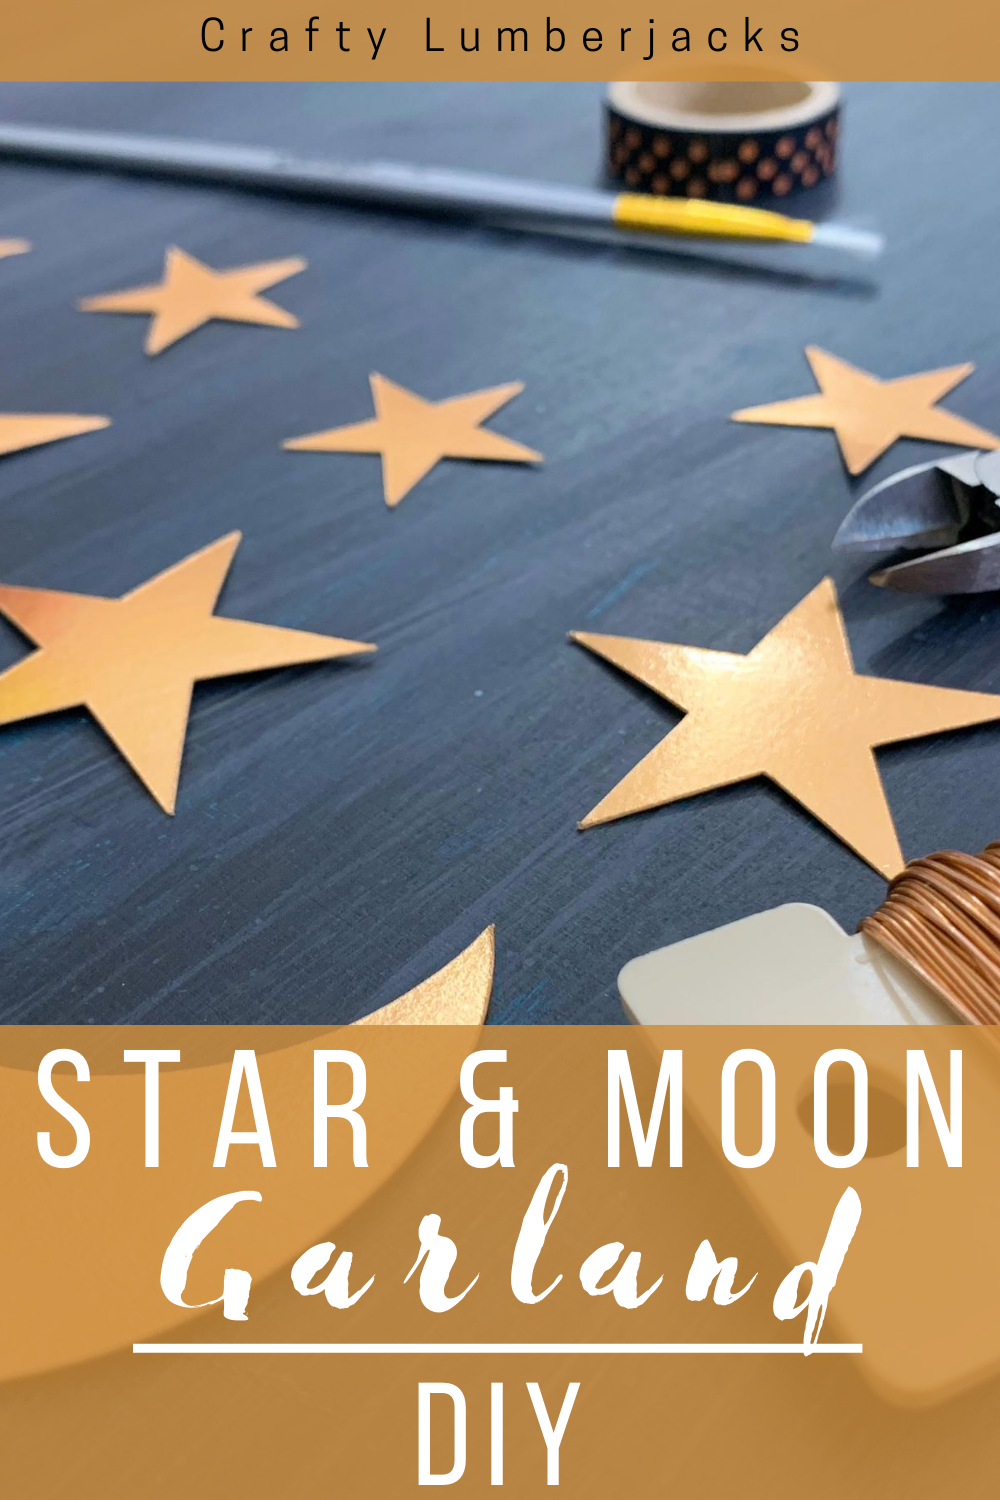 DIY easy paper star and moon garland with floral wire. #cricut #madewithcricut #cricutmade #halloweendecor #mystical #fortune #fortuneteller #halloweentree #halloweencristmastree #starsandmoon #craft #diy #spooky #psychic #gold #foil #foilpaper #cricutmaker #halloweencraft #halloweengarland #garland #christmasgarland #newyearsgarland #birthadygarland #hannukagarland #diygarland #easyhalloween #fastcraft #cricutair #halloweendecorations #decorations #halloweenhack